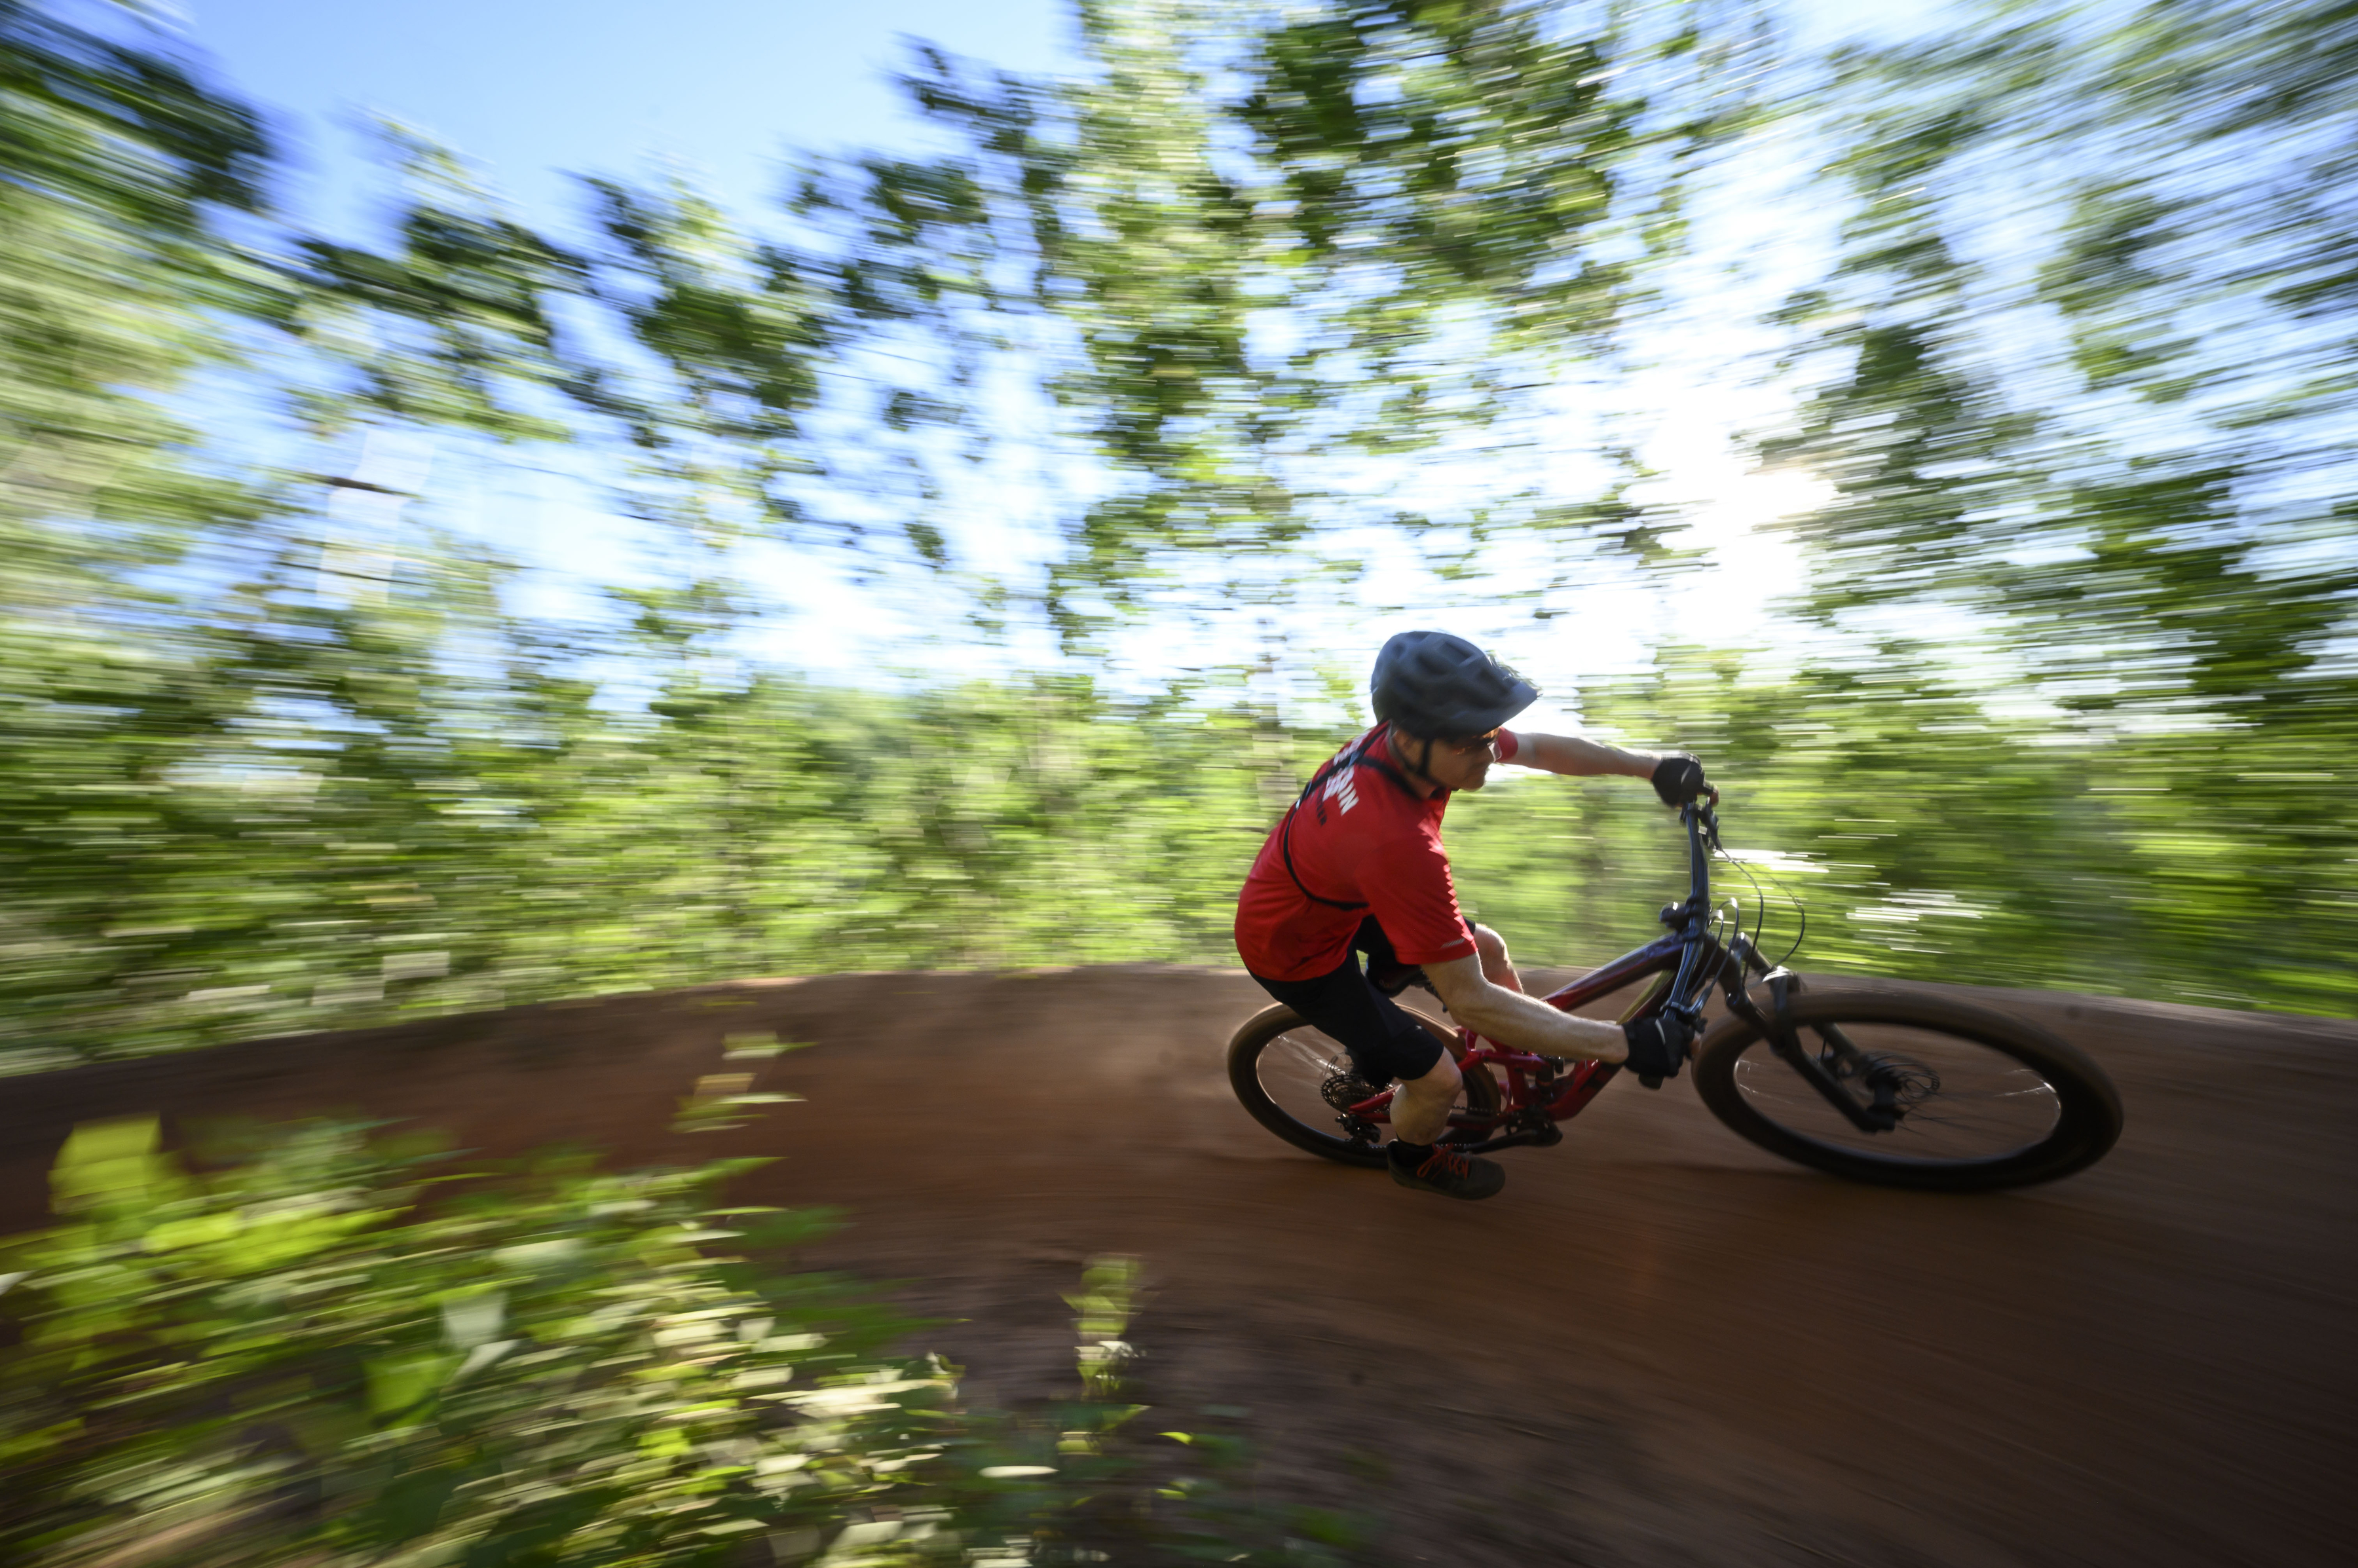 Chuck Carlson navigated a low bank on Roly Poly. He and his wife, Sue, are teachers in the Brainerd area and avid mountain bikers.